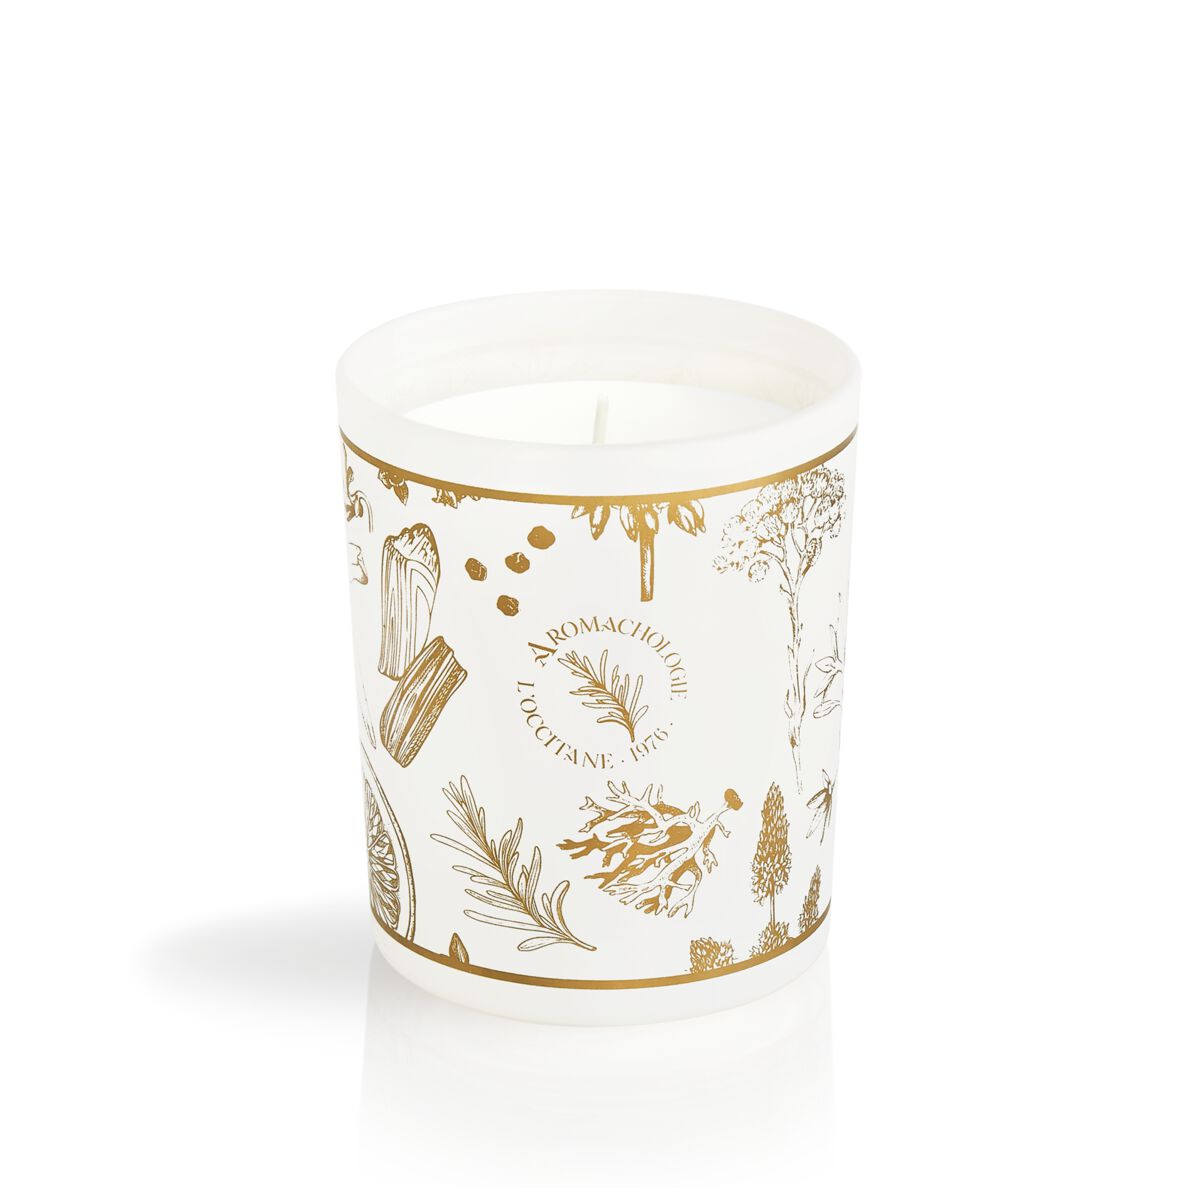 Tradition des 13 Desserts Scented Candle 8.4 oz.